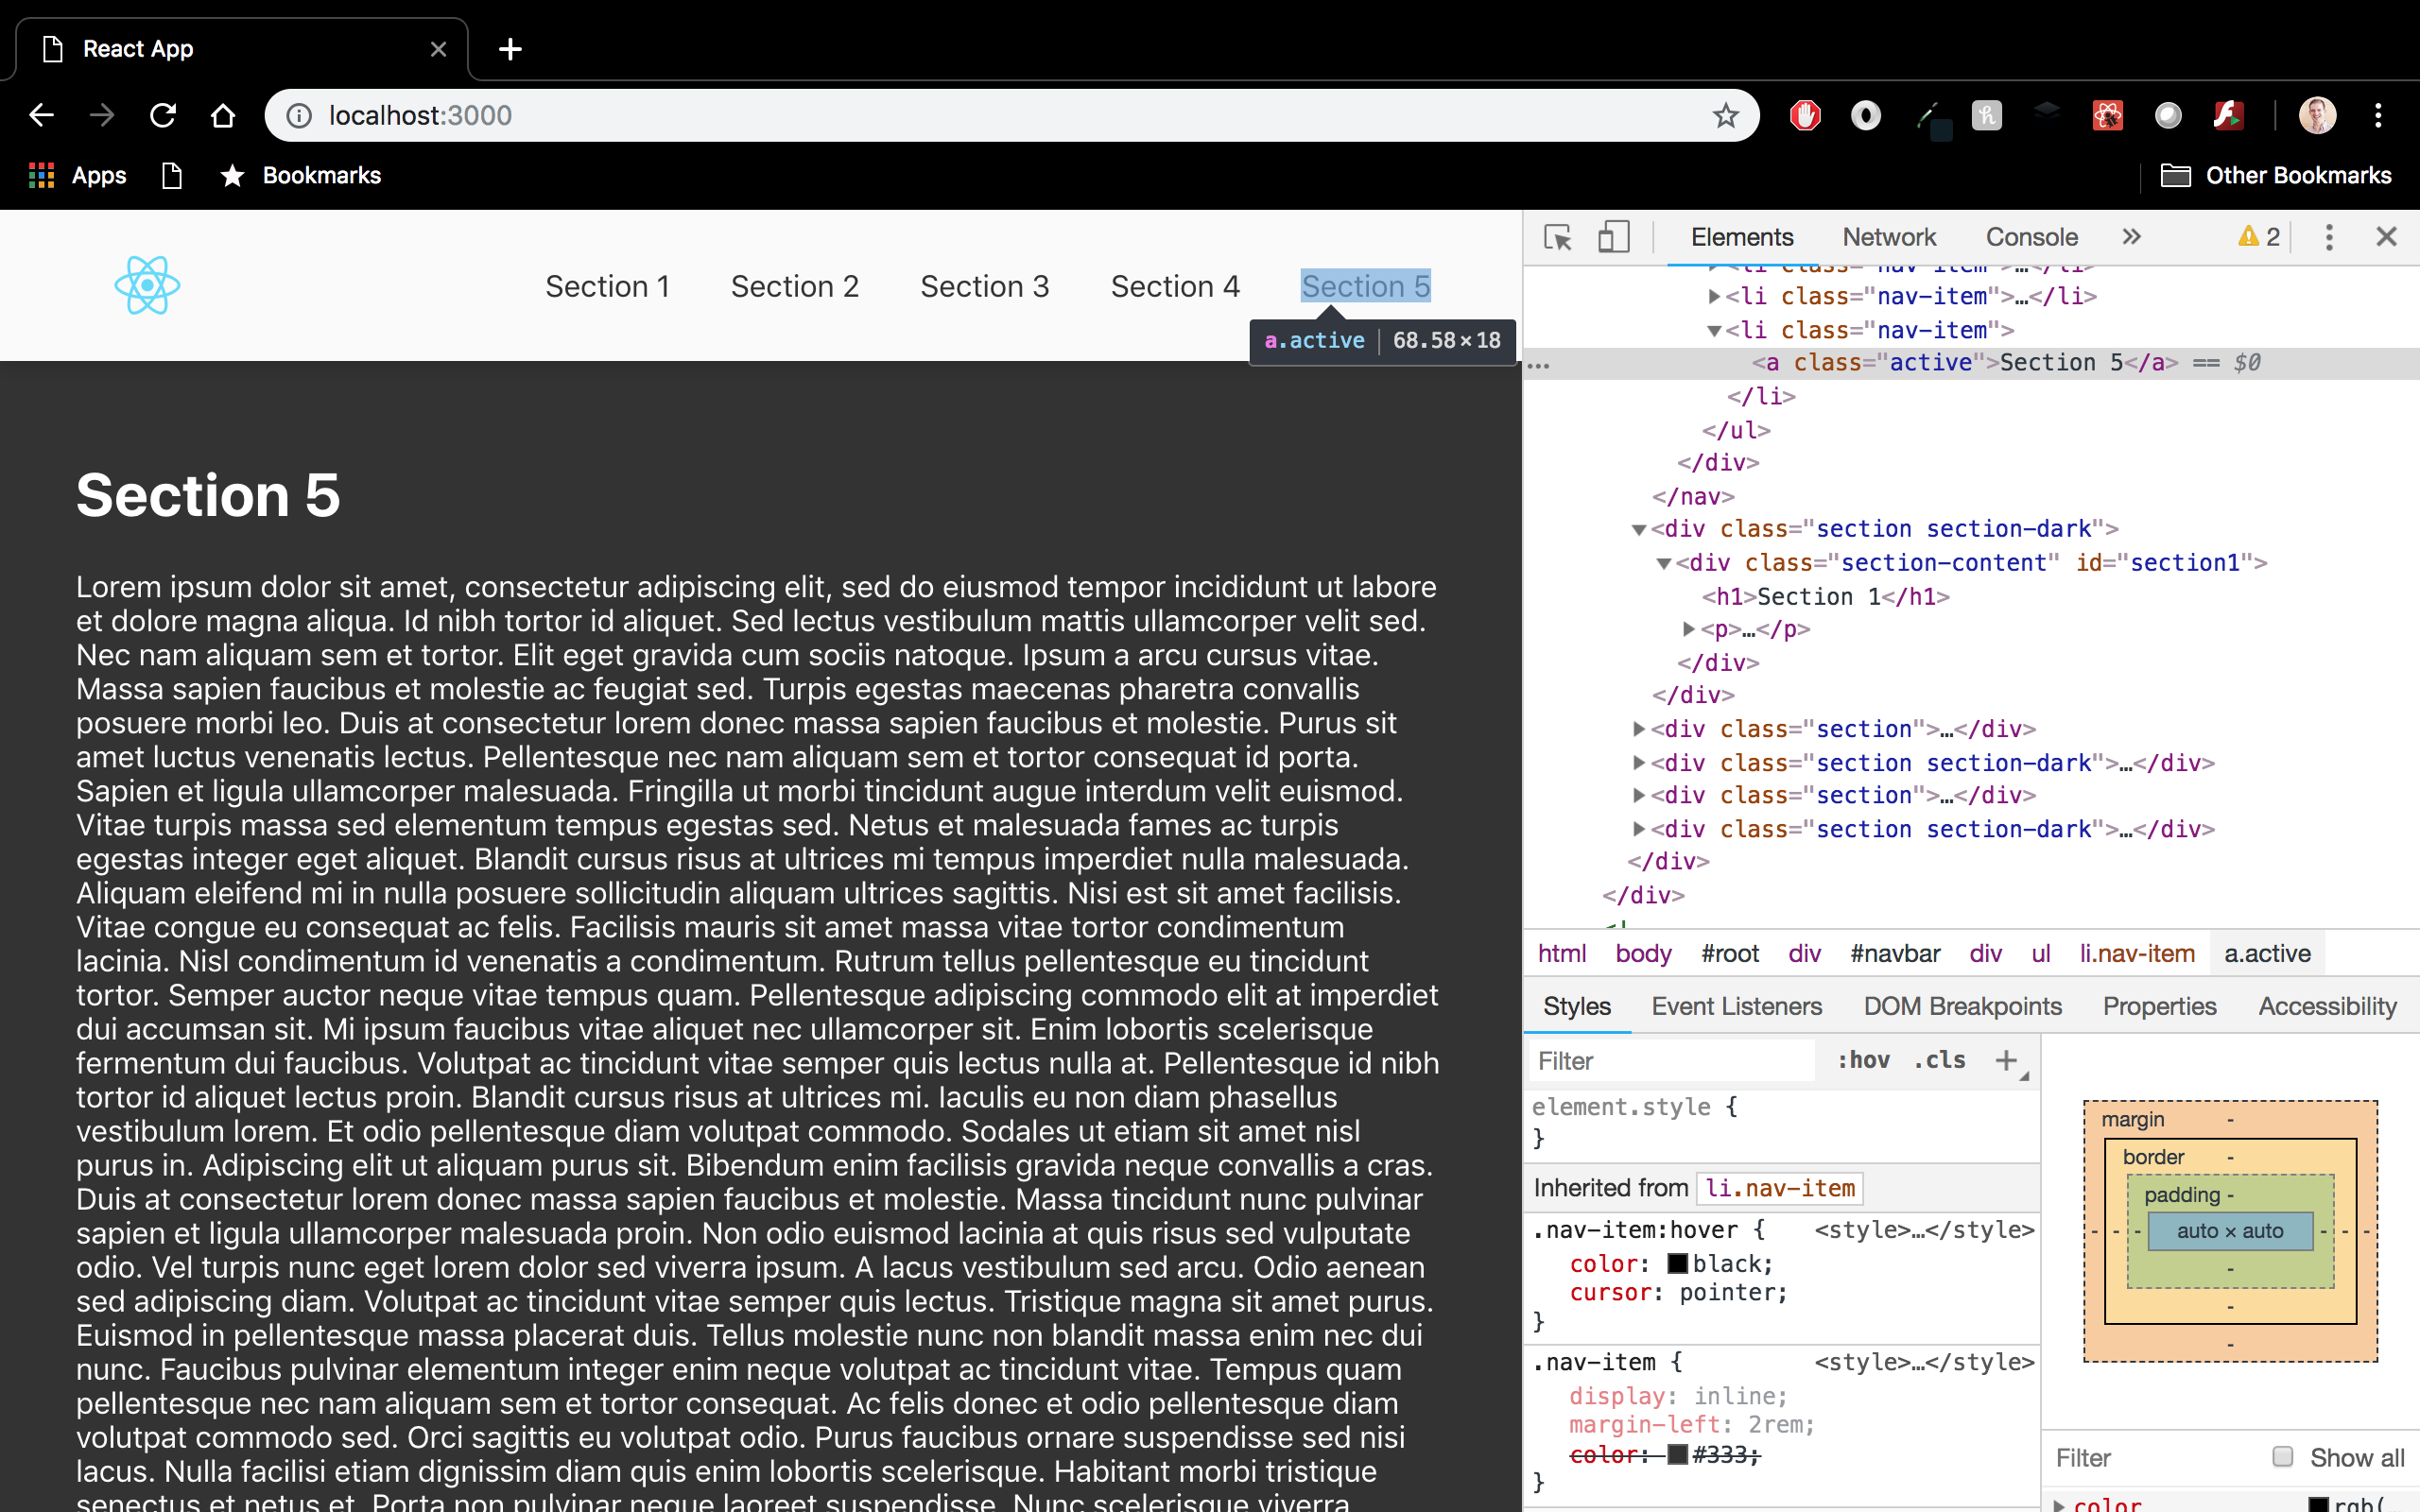 Browser view of React app